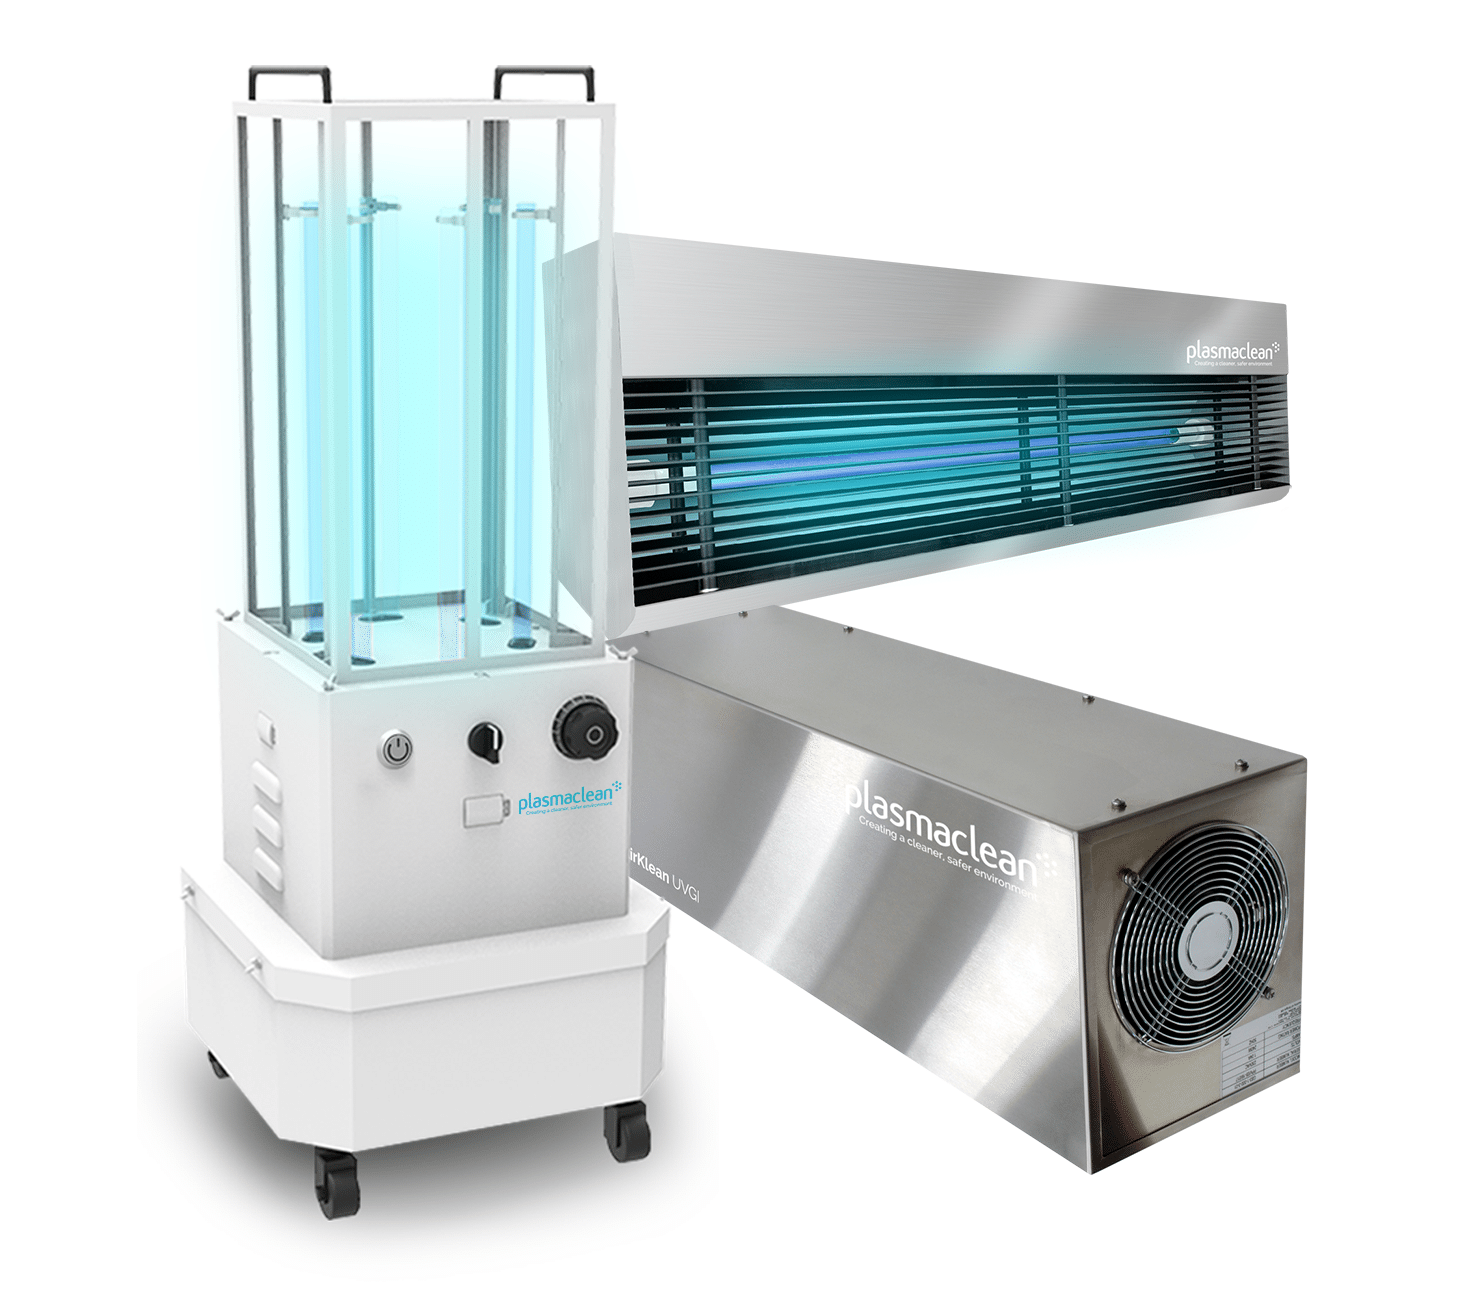 Standalone UVGI solutions from Plasma Clean